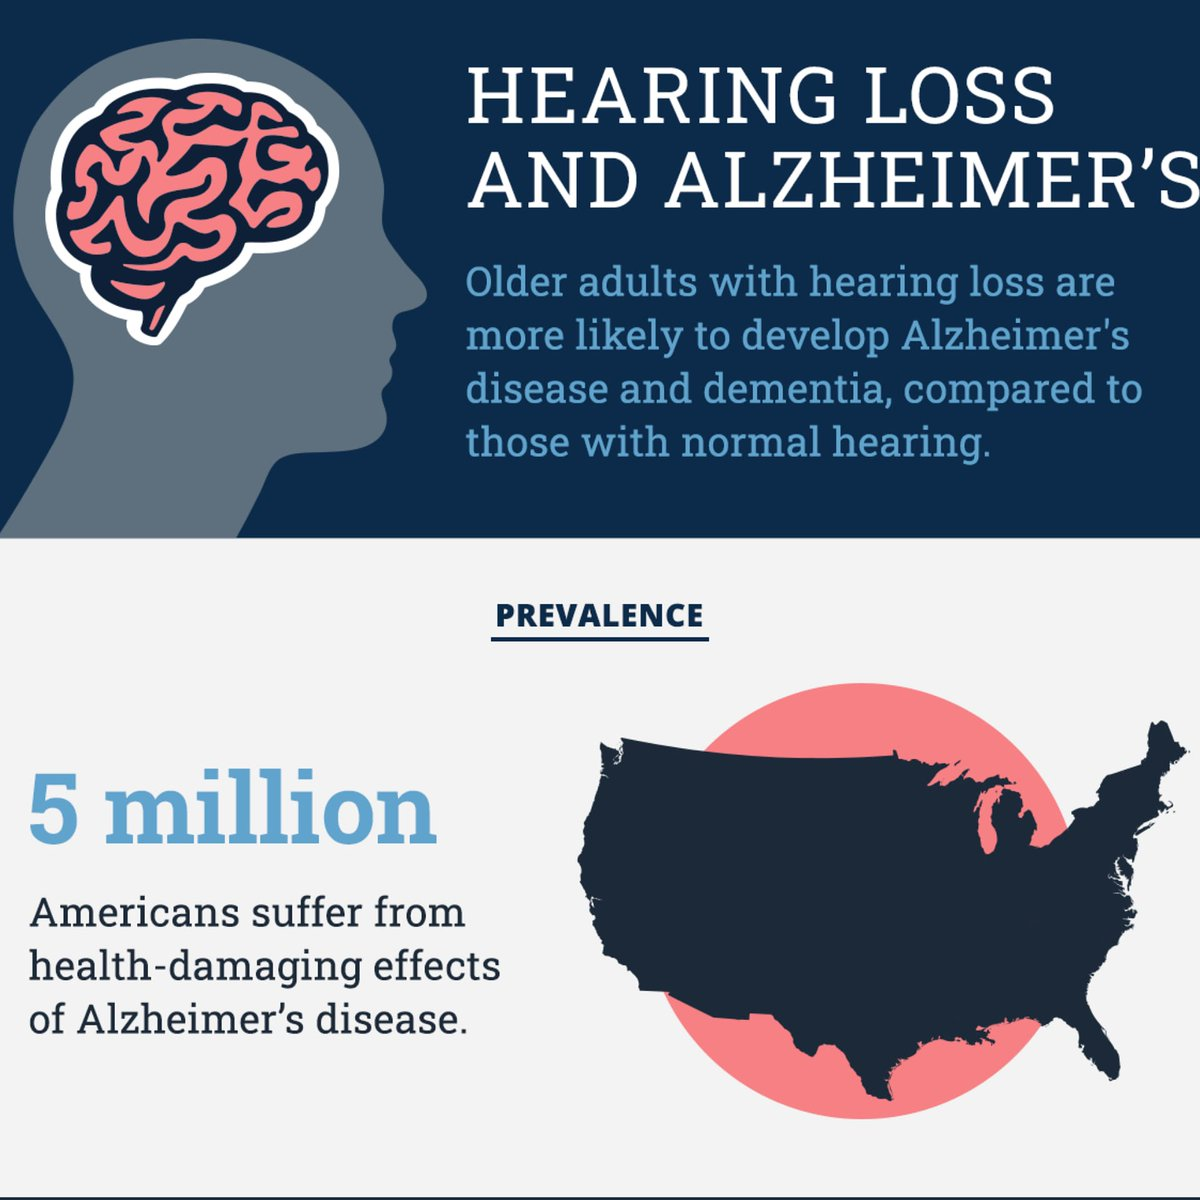 Hearing impaired more likely to develop #Alzheimer's & #dementia .........  #depression #tinnitus #anxiety #fatigue #memoryloss #isolation #cognitivedecline #Audiologist #losangeles #shermanoaks #hearingloss #hearingaids #tinnitus #earwax #hearingimpairment #noise #noiseexposure